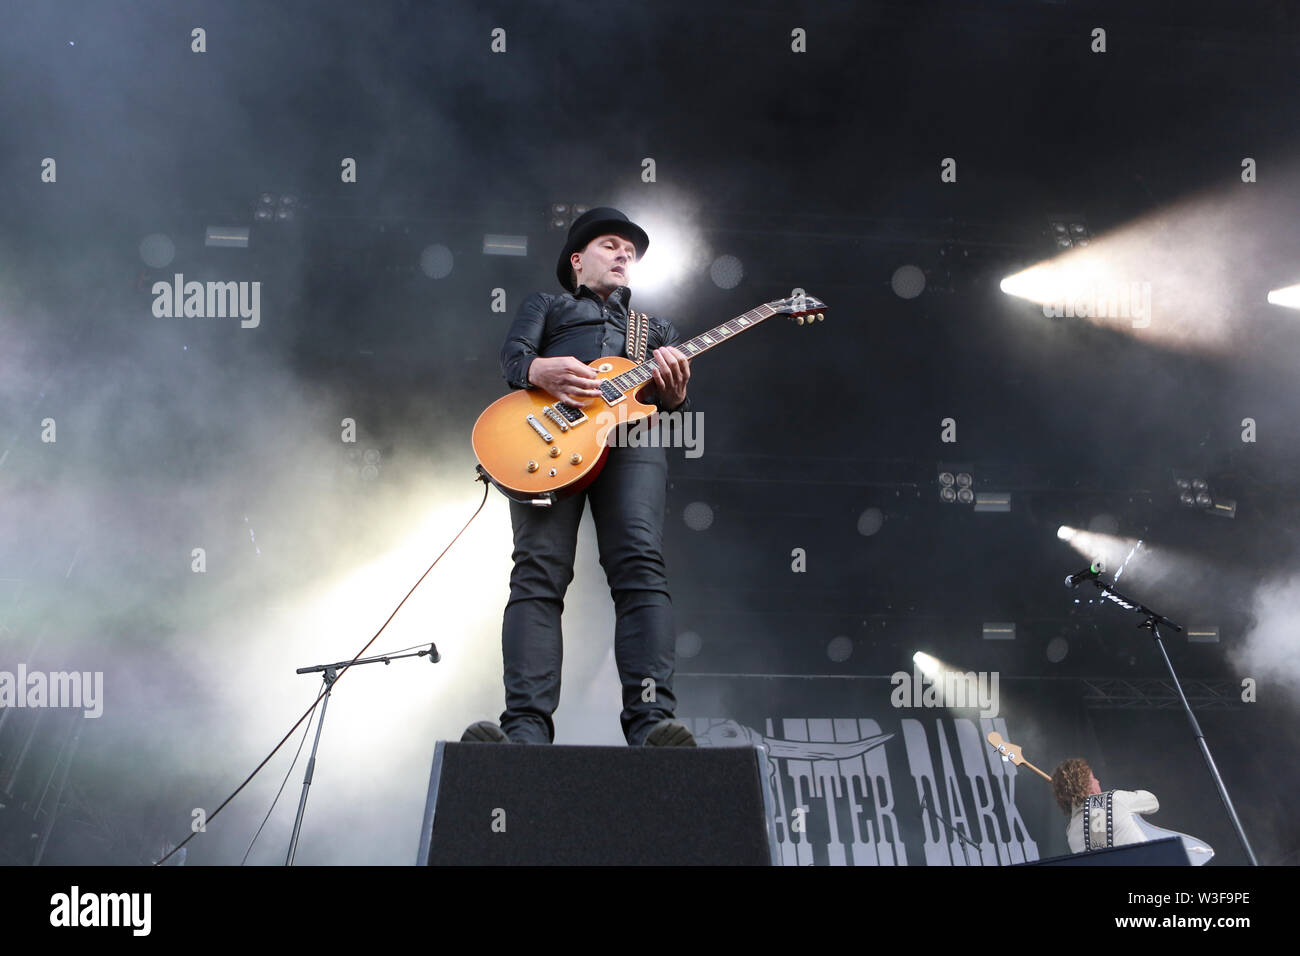 Kvinesdal, Norway - July 11th, 2019. The Danish rock band D-A-D performs a live concert during the Norwegian music festival Norway Rock Festival 2019. Here guitarist Jacob Binzer is seen live on stage. (Photo credit: Gonzales Photo - Synne Nilsson). - Stock Image